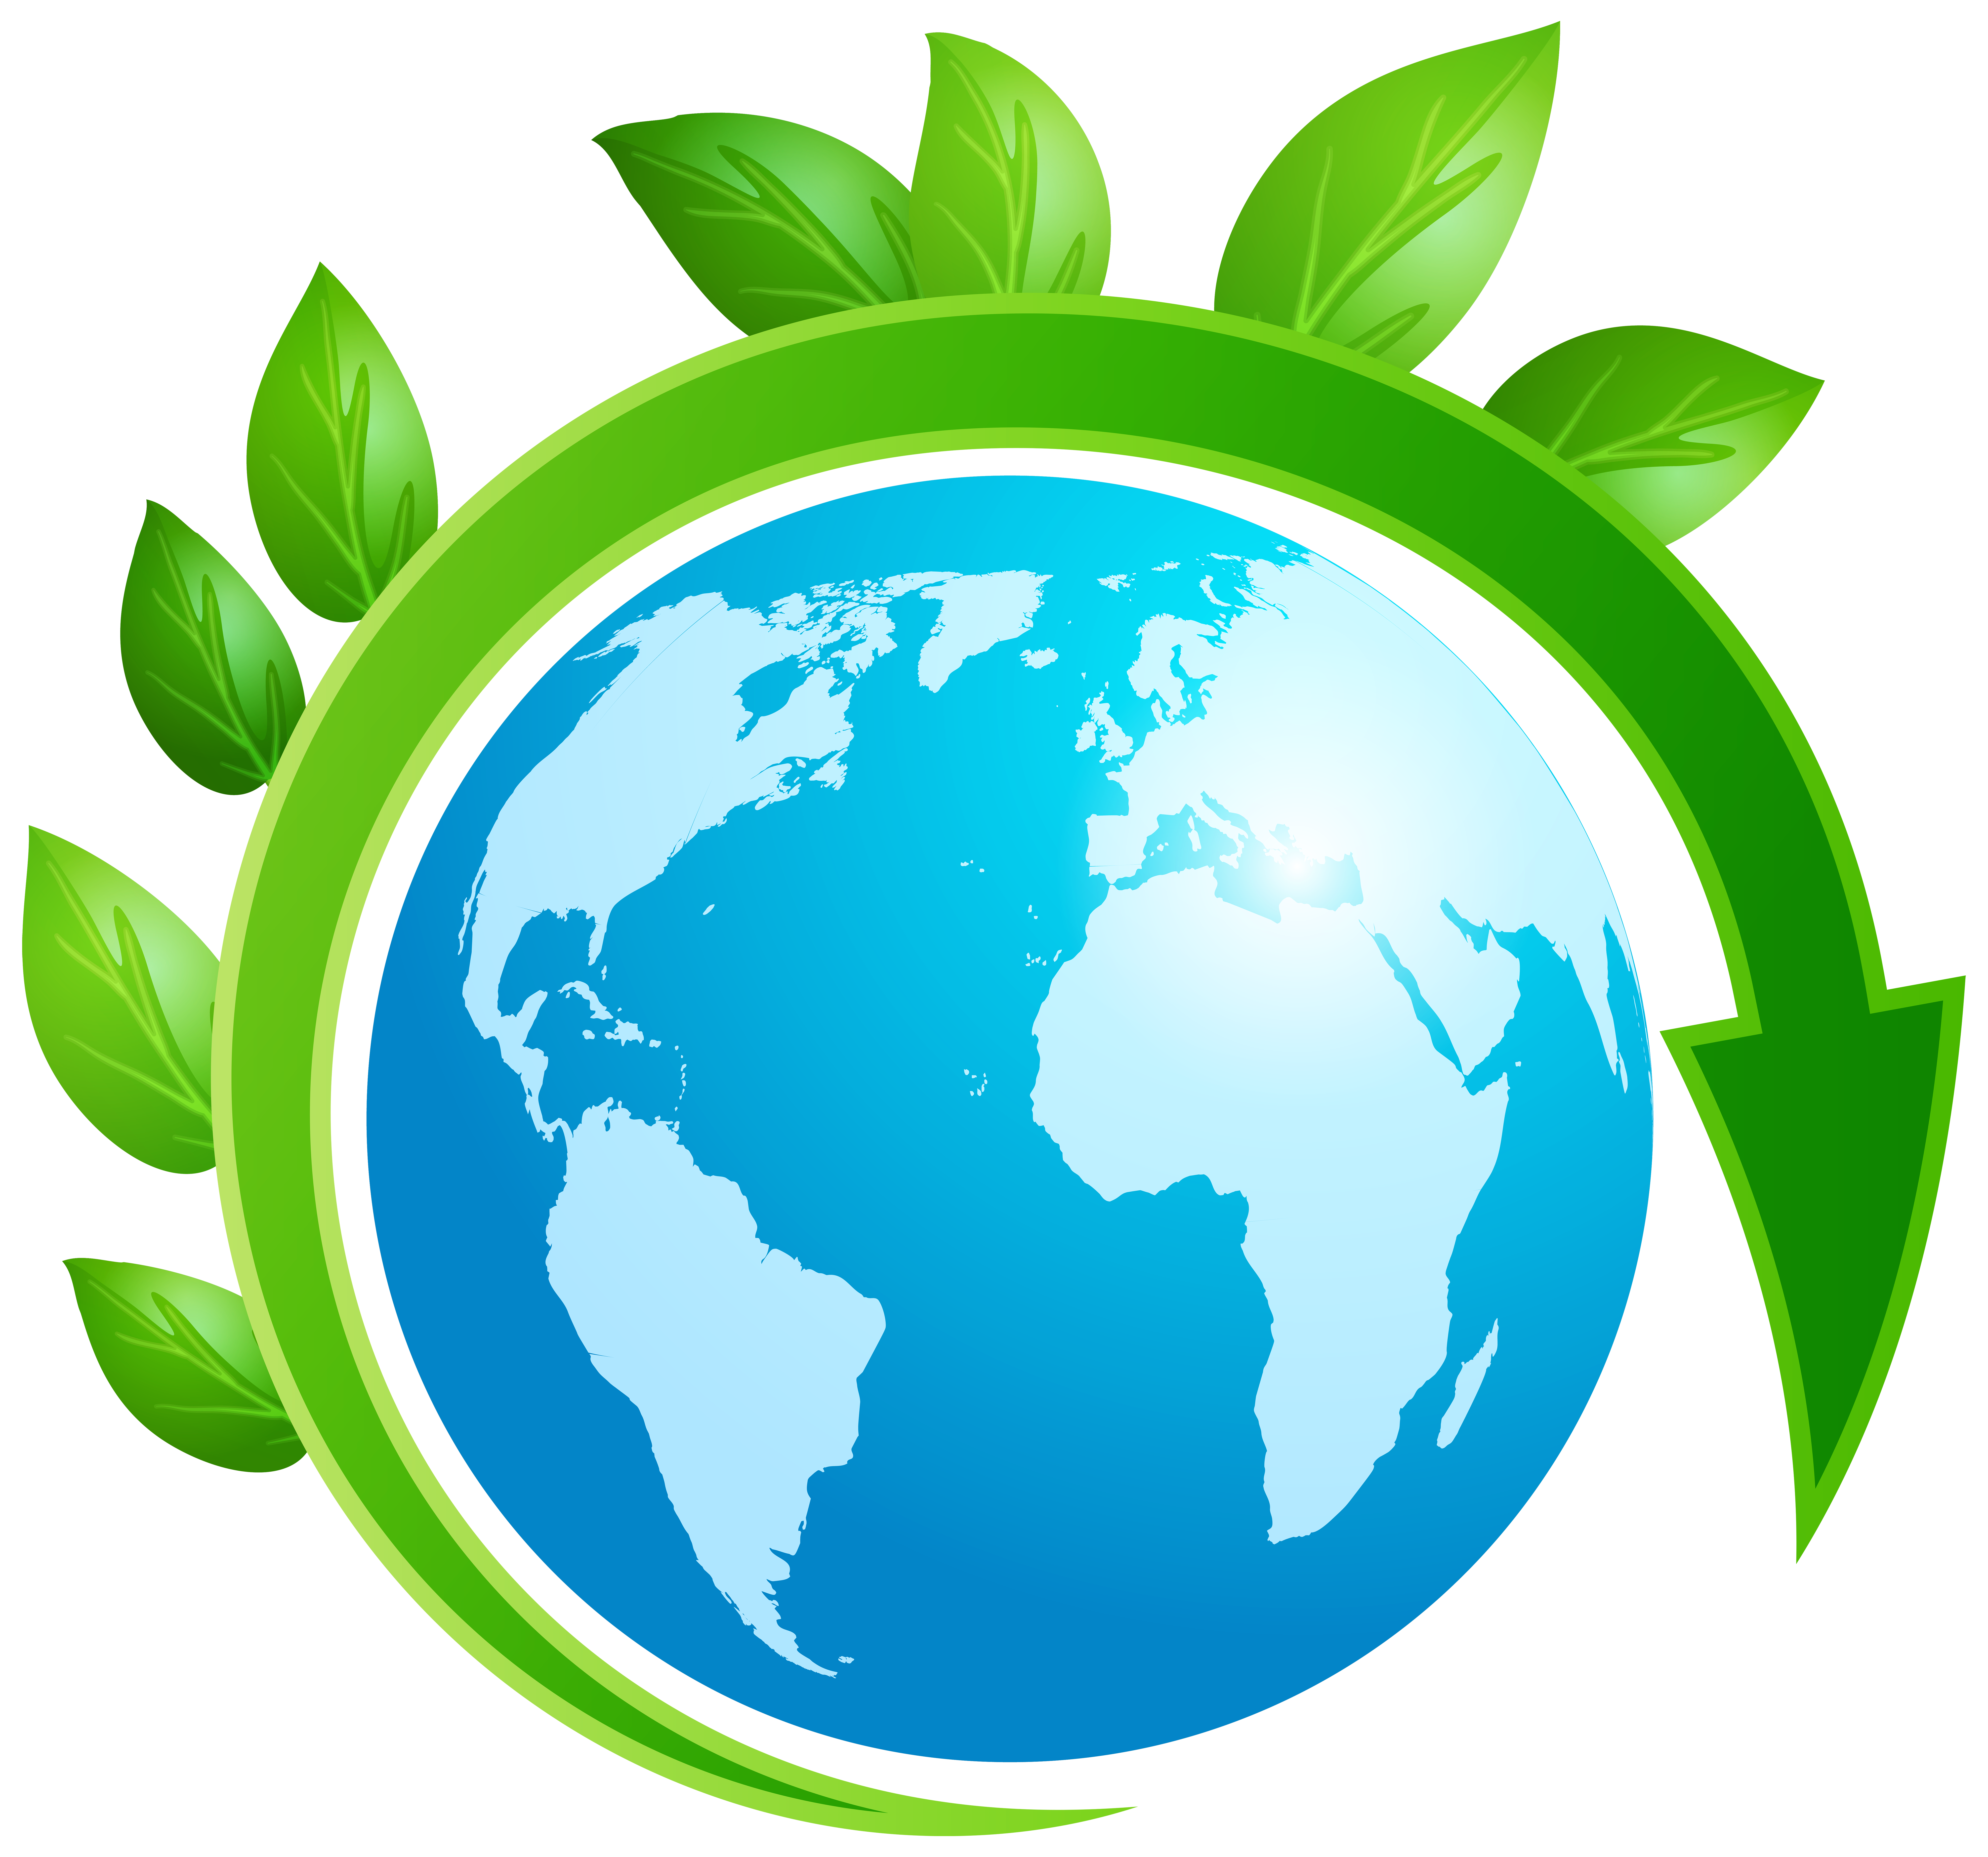 Earth planet with leaves. Planets clipart animated globe